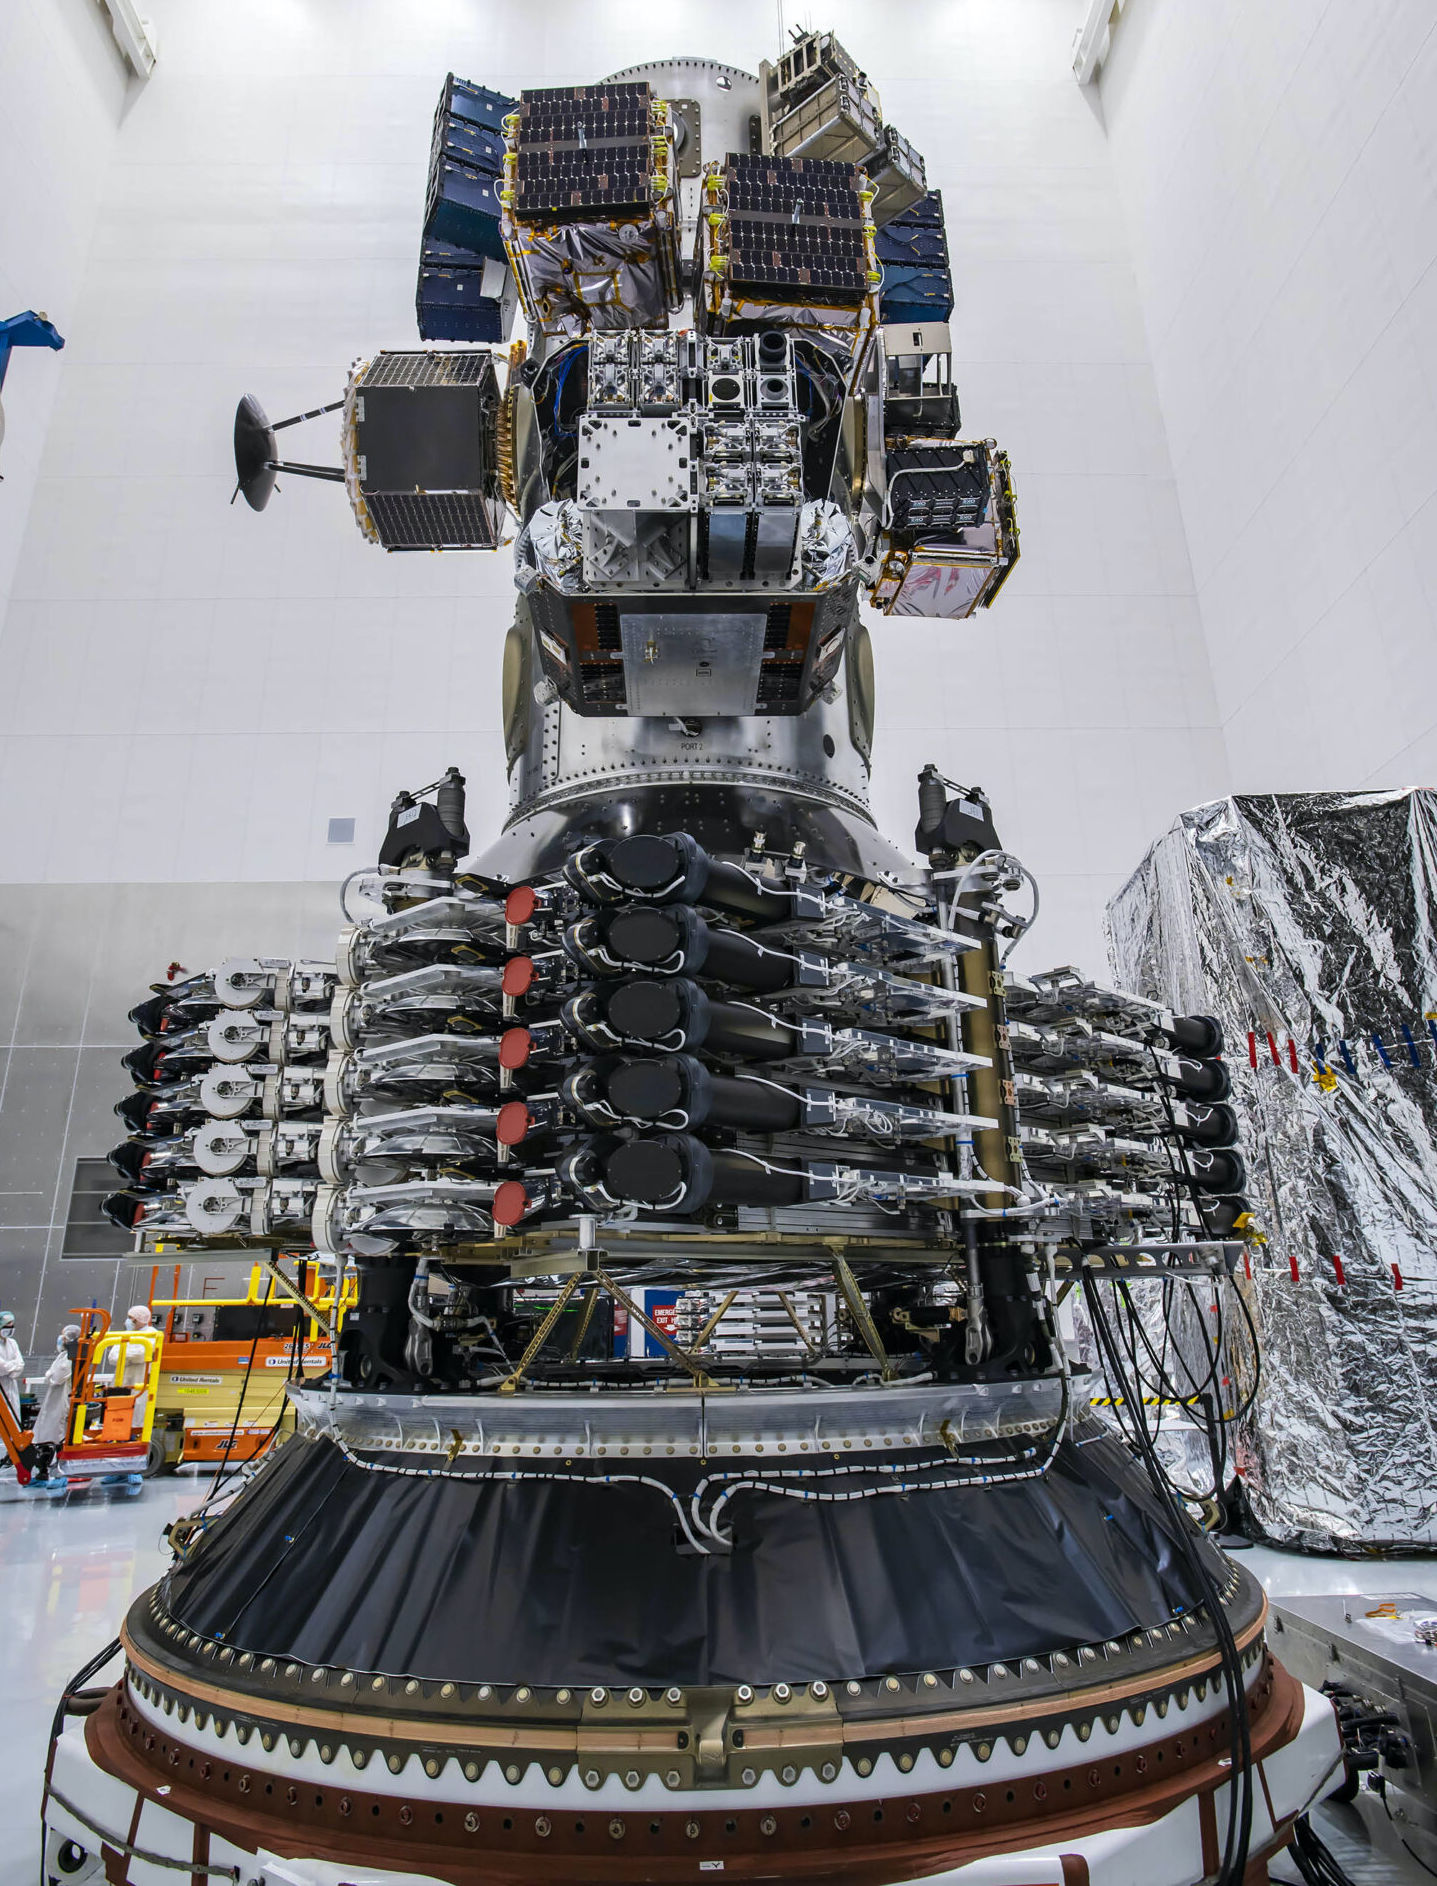 Starlink satellites prior to launch. The black circles in the middle are laser links.